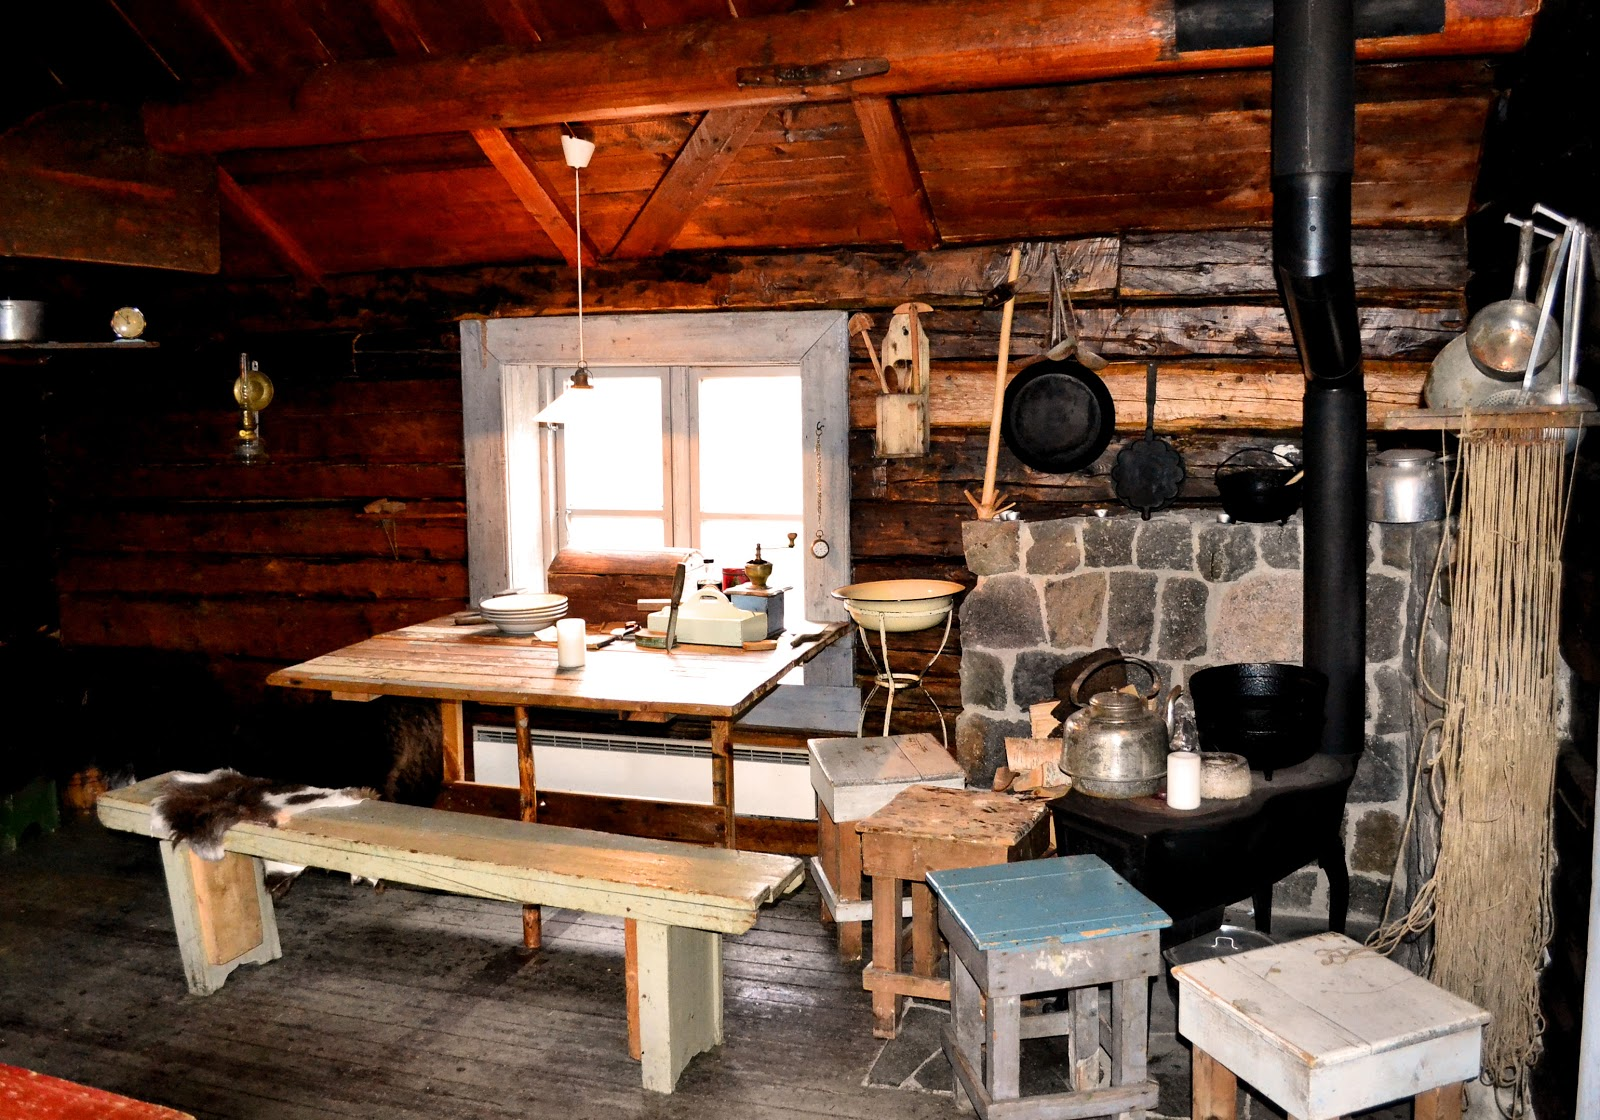 The kitchen included the bare essentials: table, cupboard and a wood-burning stove.